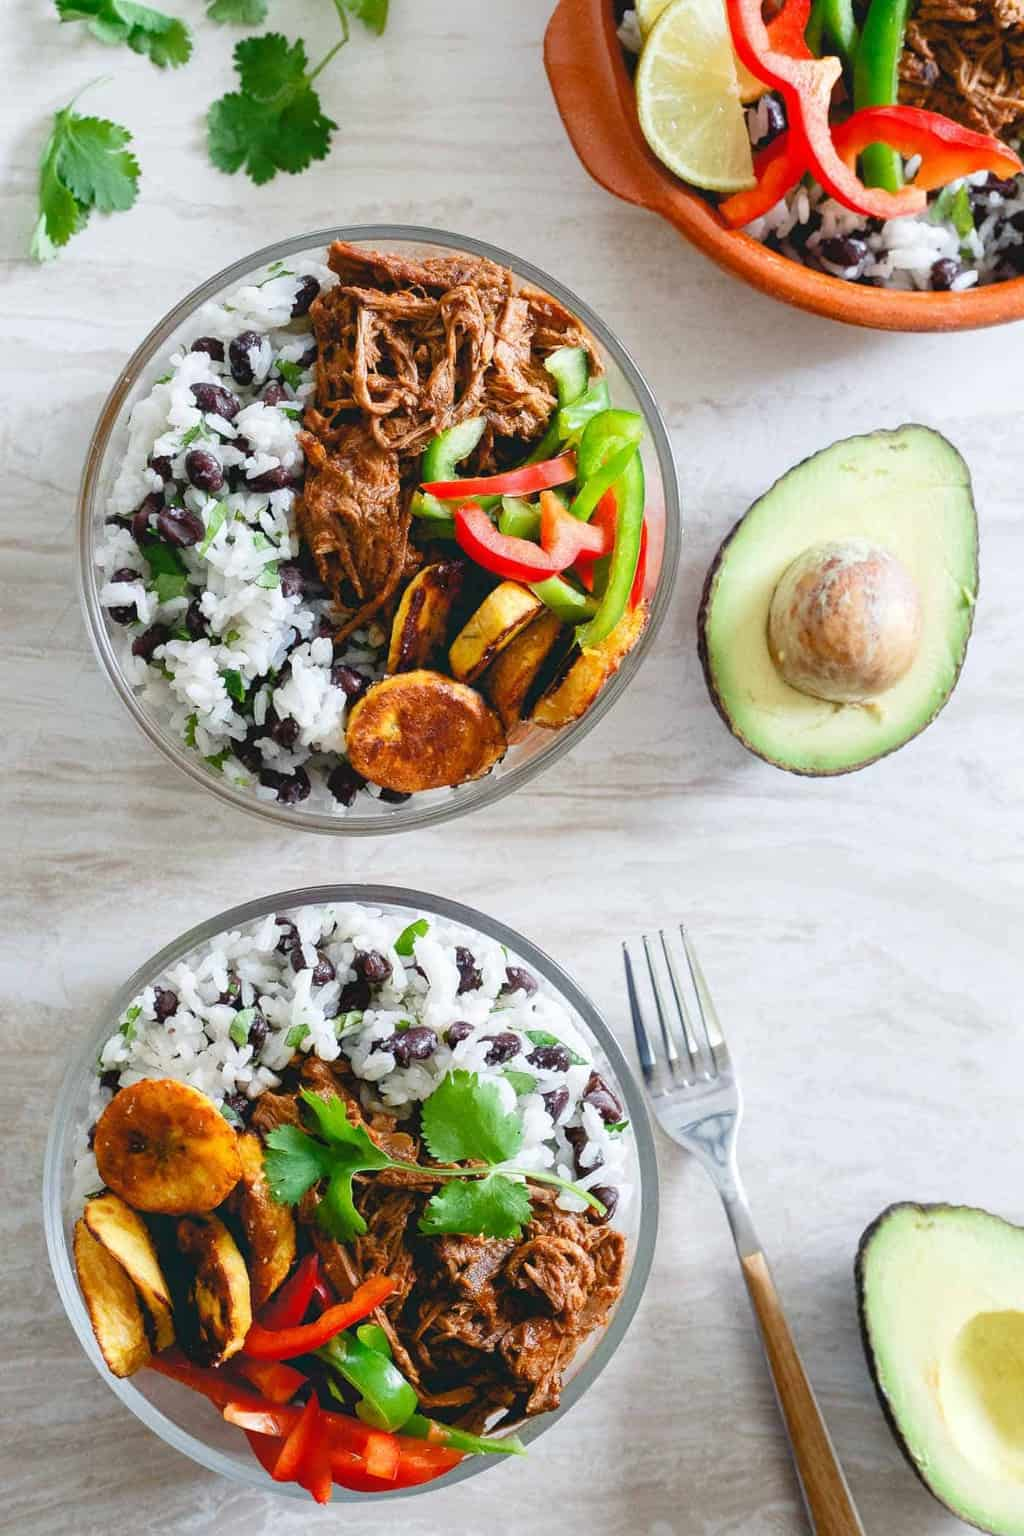 Shredded Mexican Beef Bowls - Gina from Running to the Kitchen